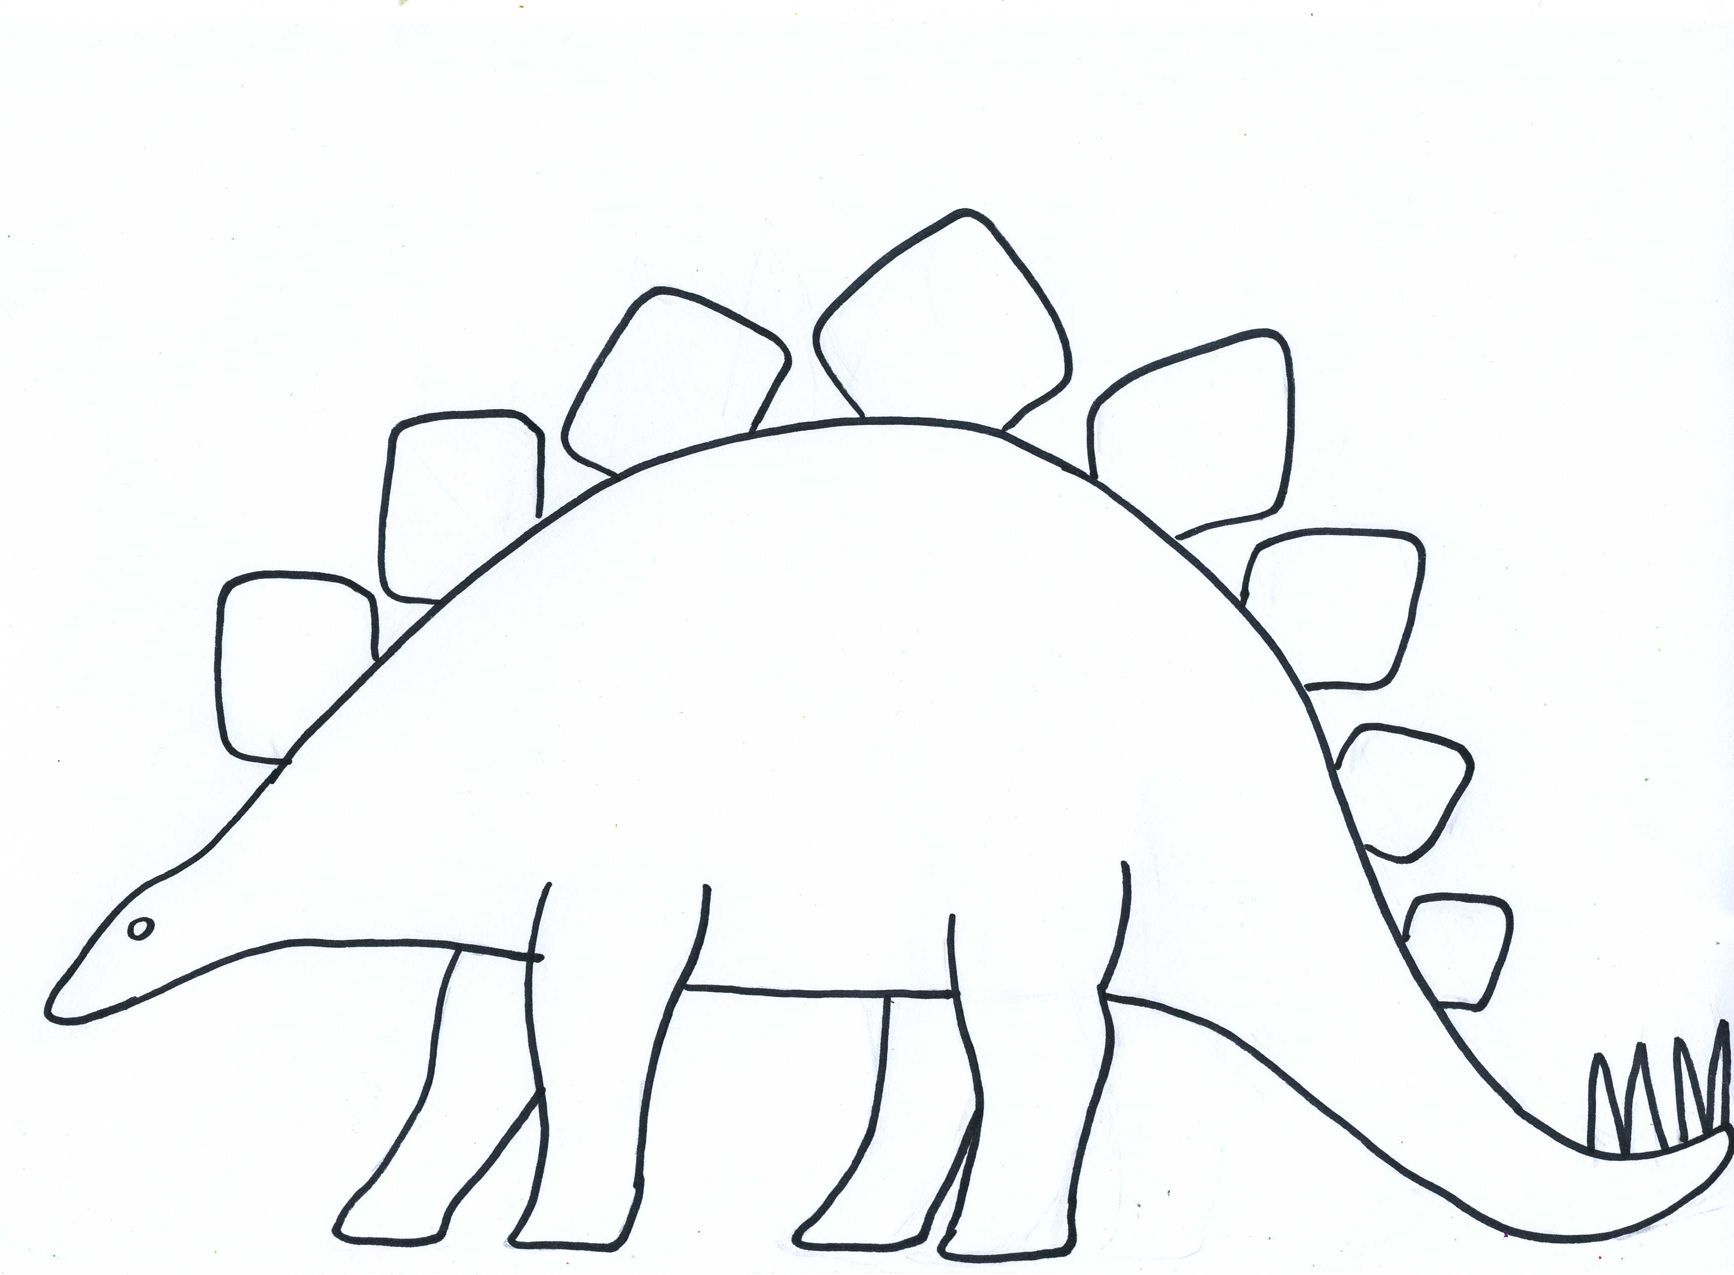 free printable dinosaur pictures paper crafts for children